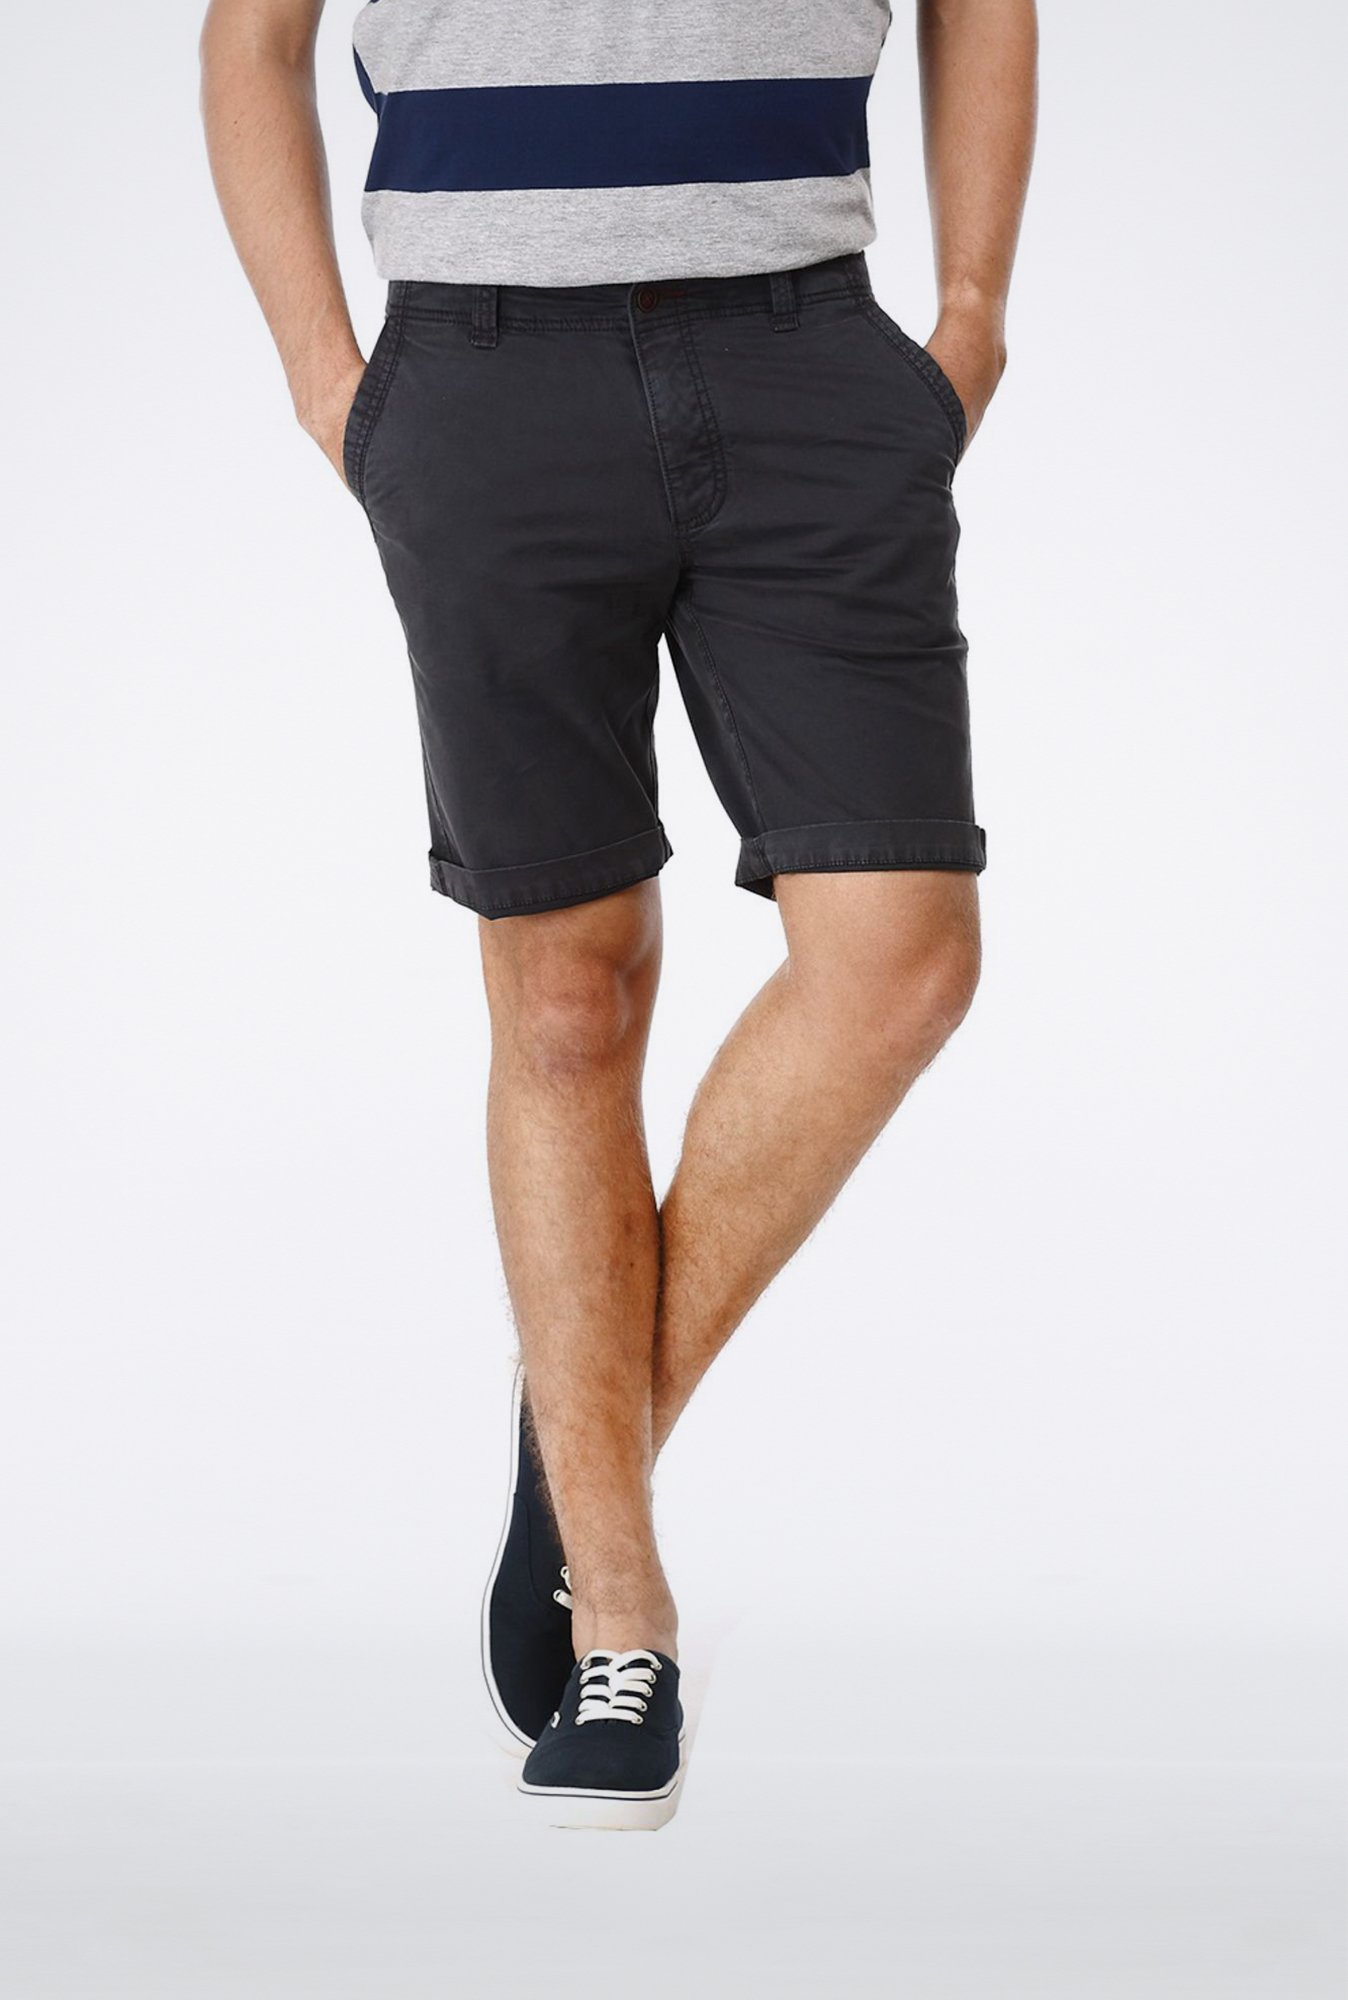 Basics Comfort Fit Dark Grey Garment Dyed Knee Length Shorts